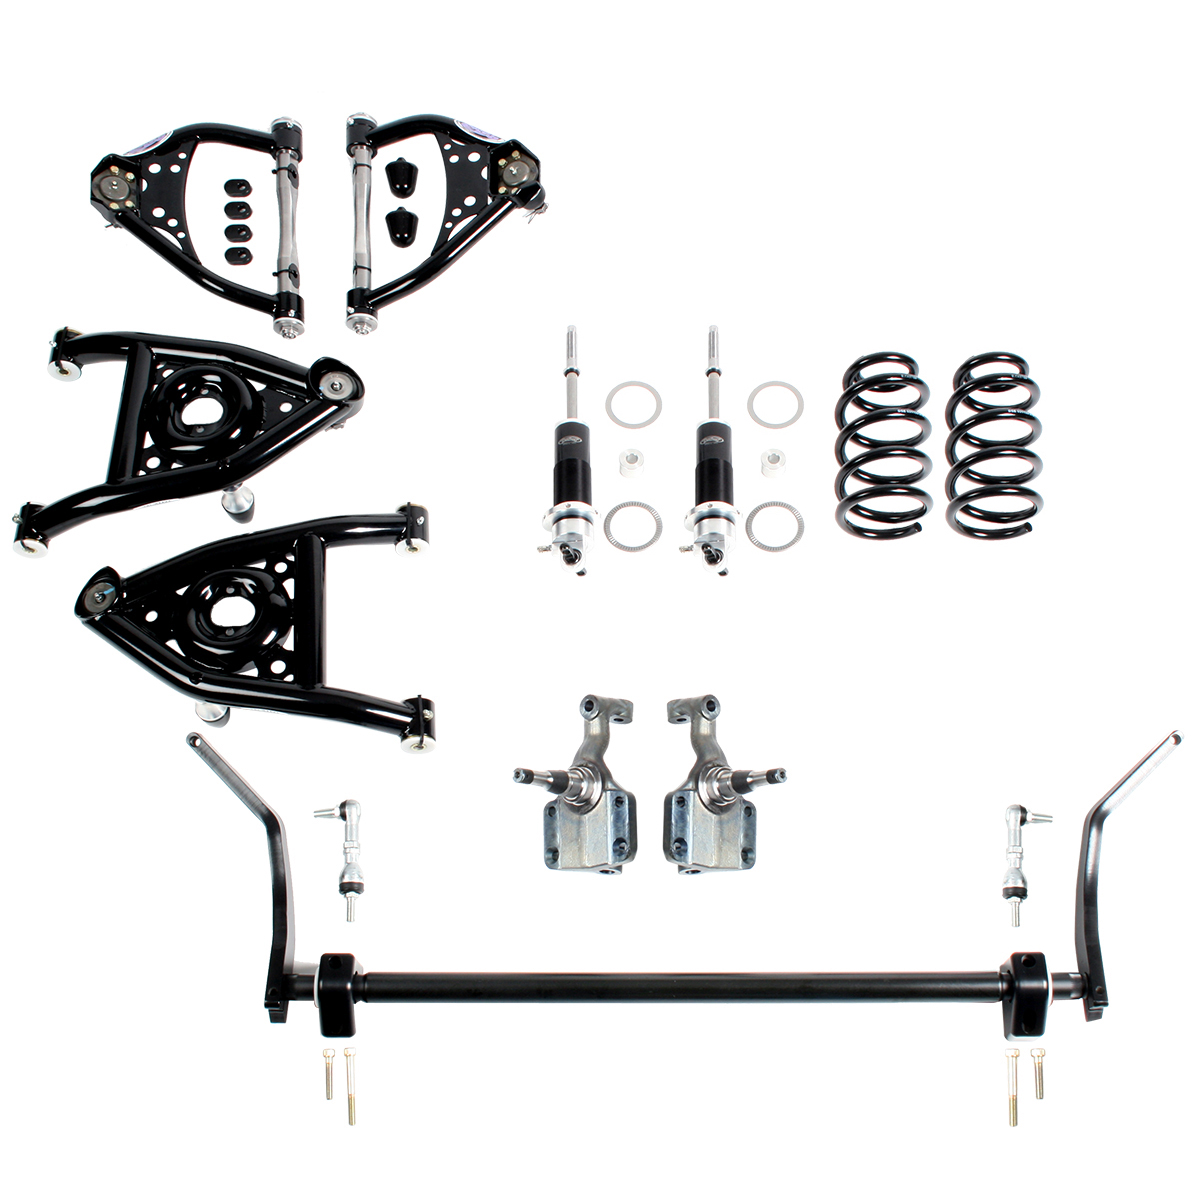 Detroit Speed  Speed Kit 2 Front Suspension Kit with Splined Sway Bar Base Shocks 1968-1972 A-Body BBC